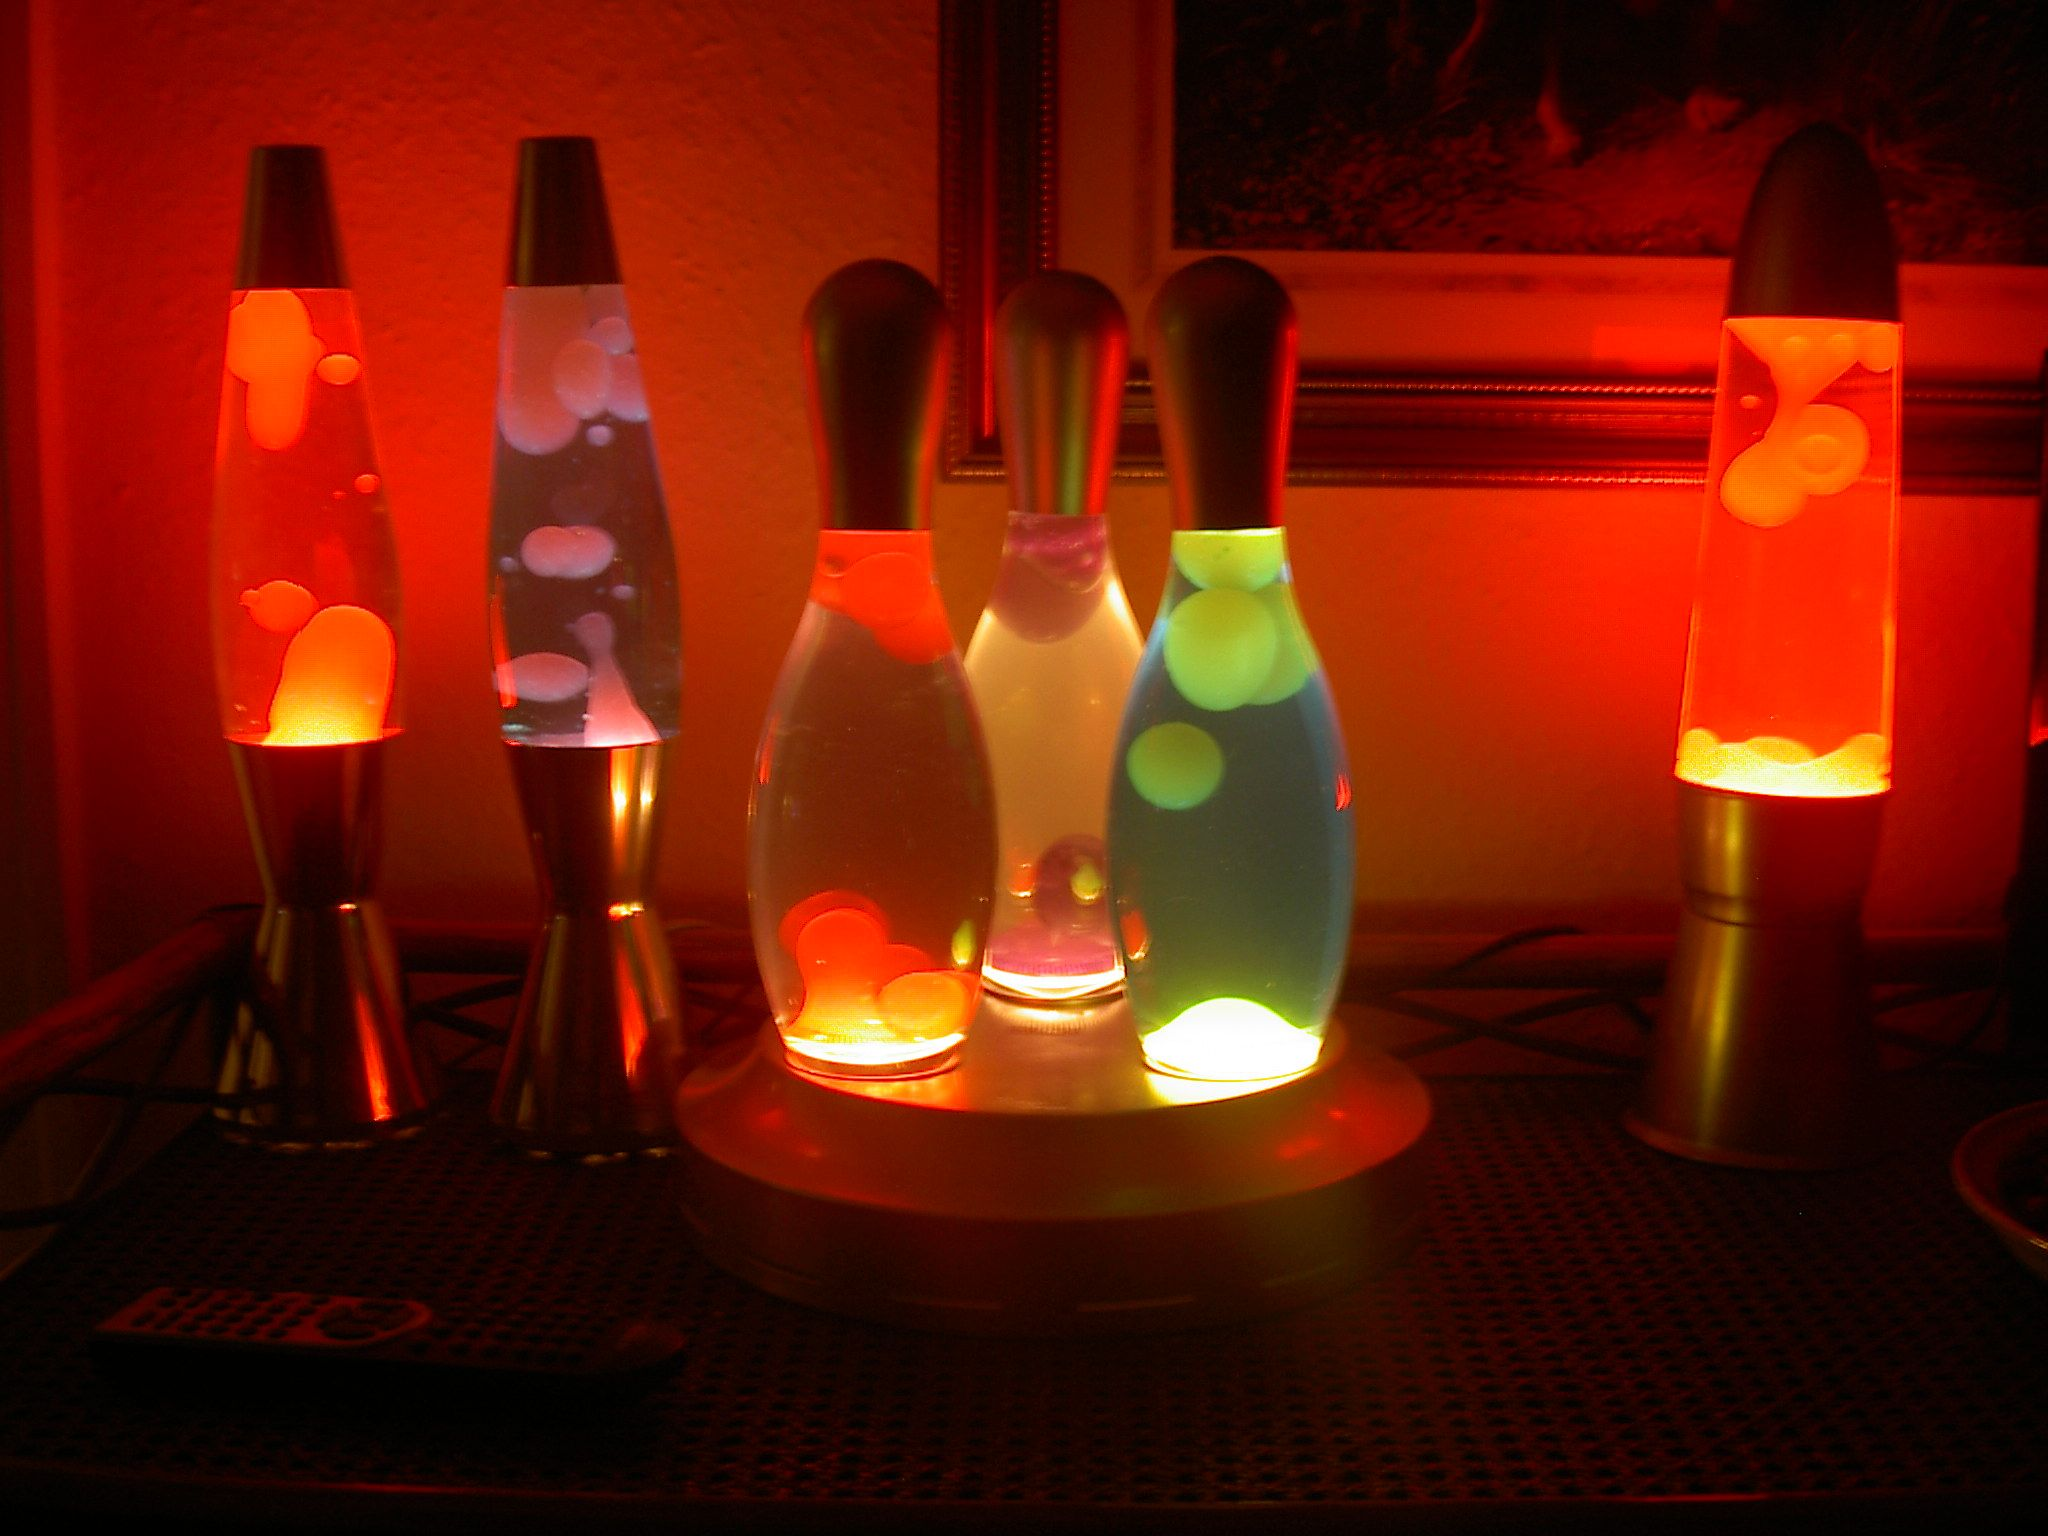 Amazing Cool Lava Lamps For Sale | Skittles Lava Lamp Set For Sale UK Seller    Oozing